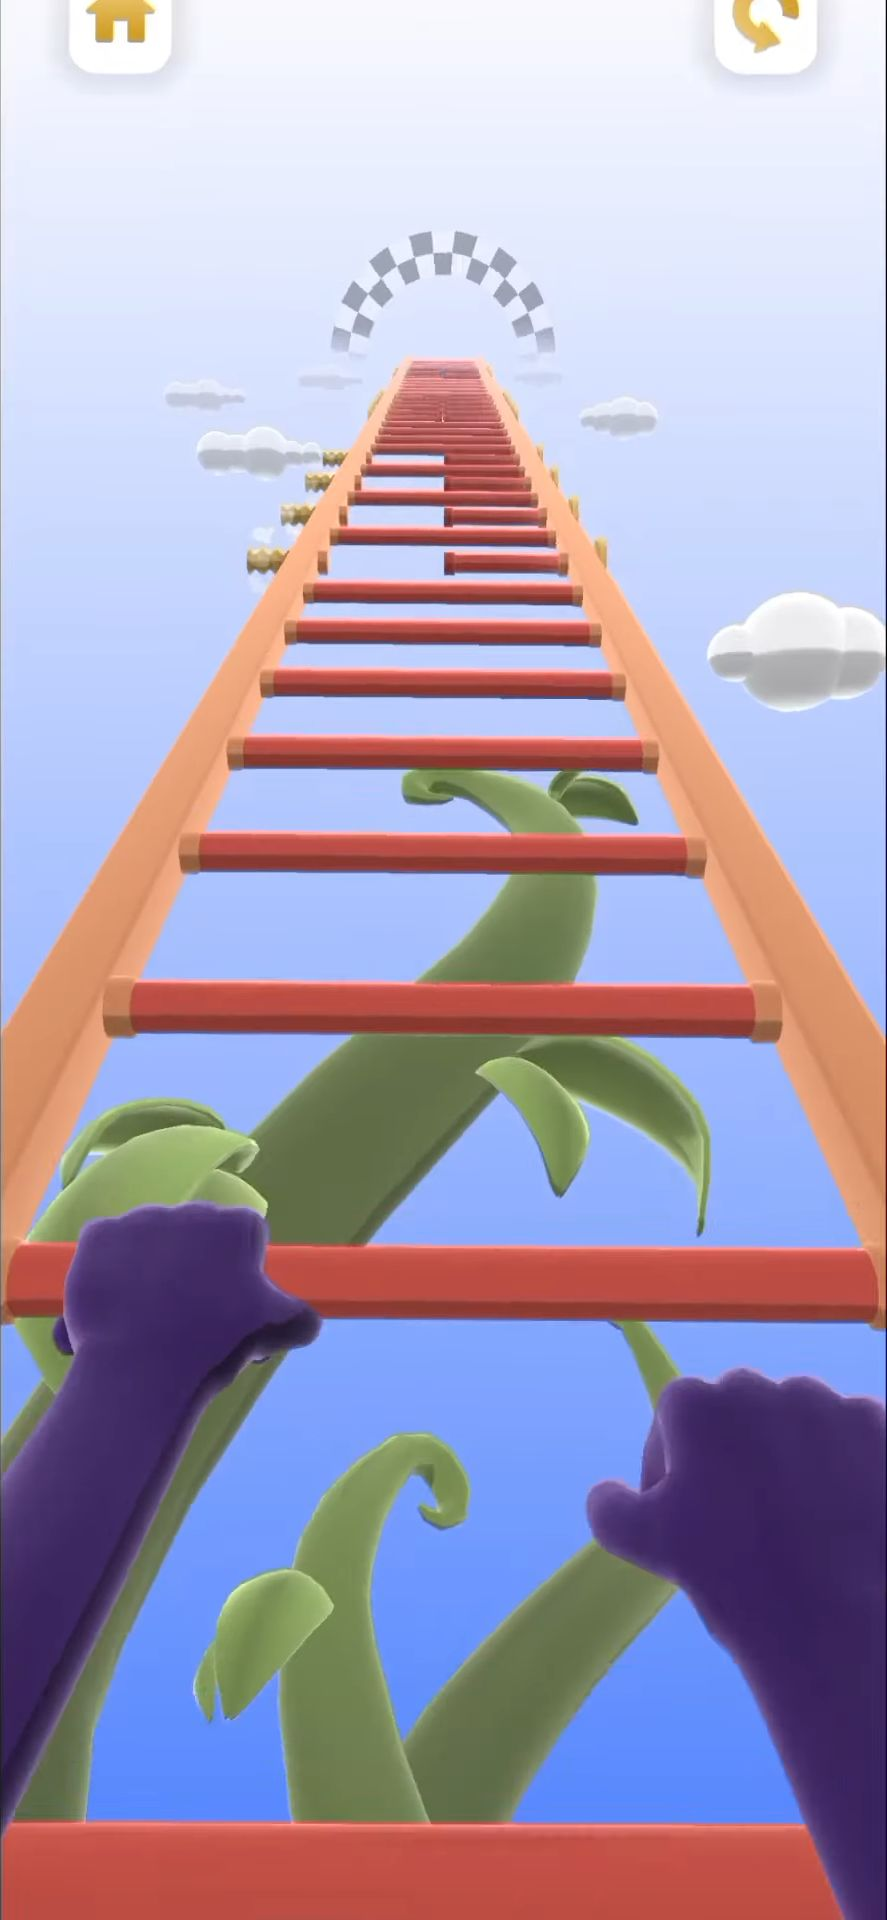 Climb the Ladder screenshot 1